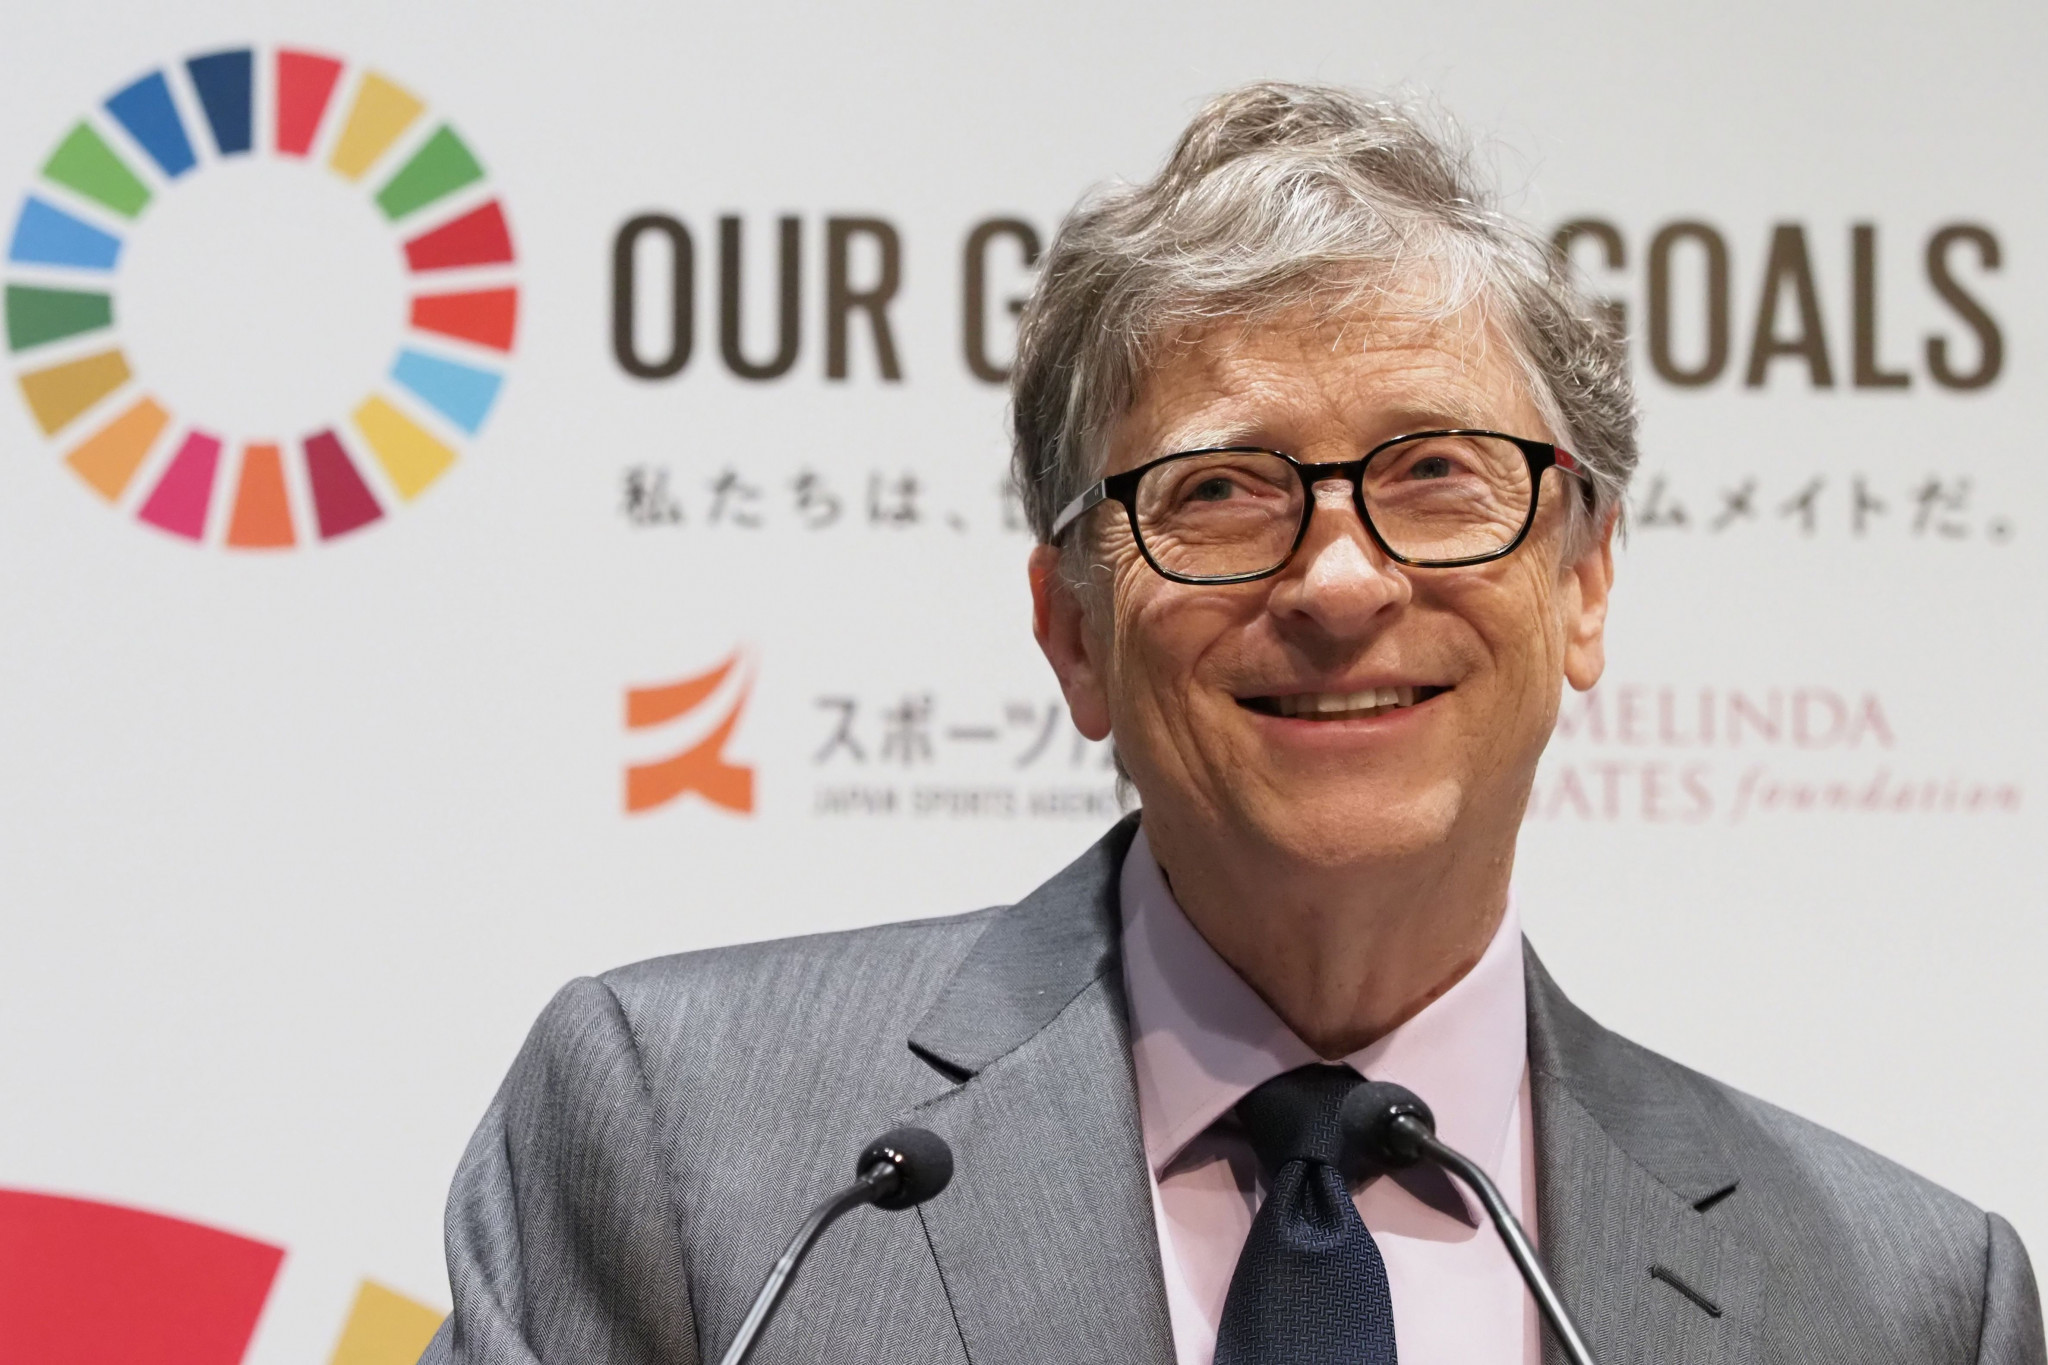 Billionaire Gates launches development partnership with Tokyo 2020